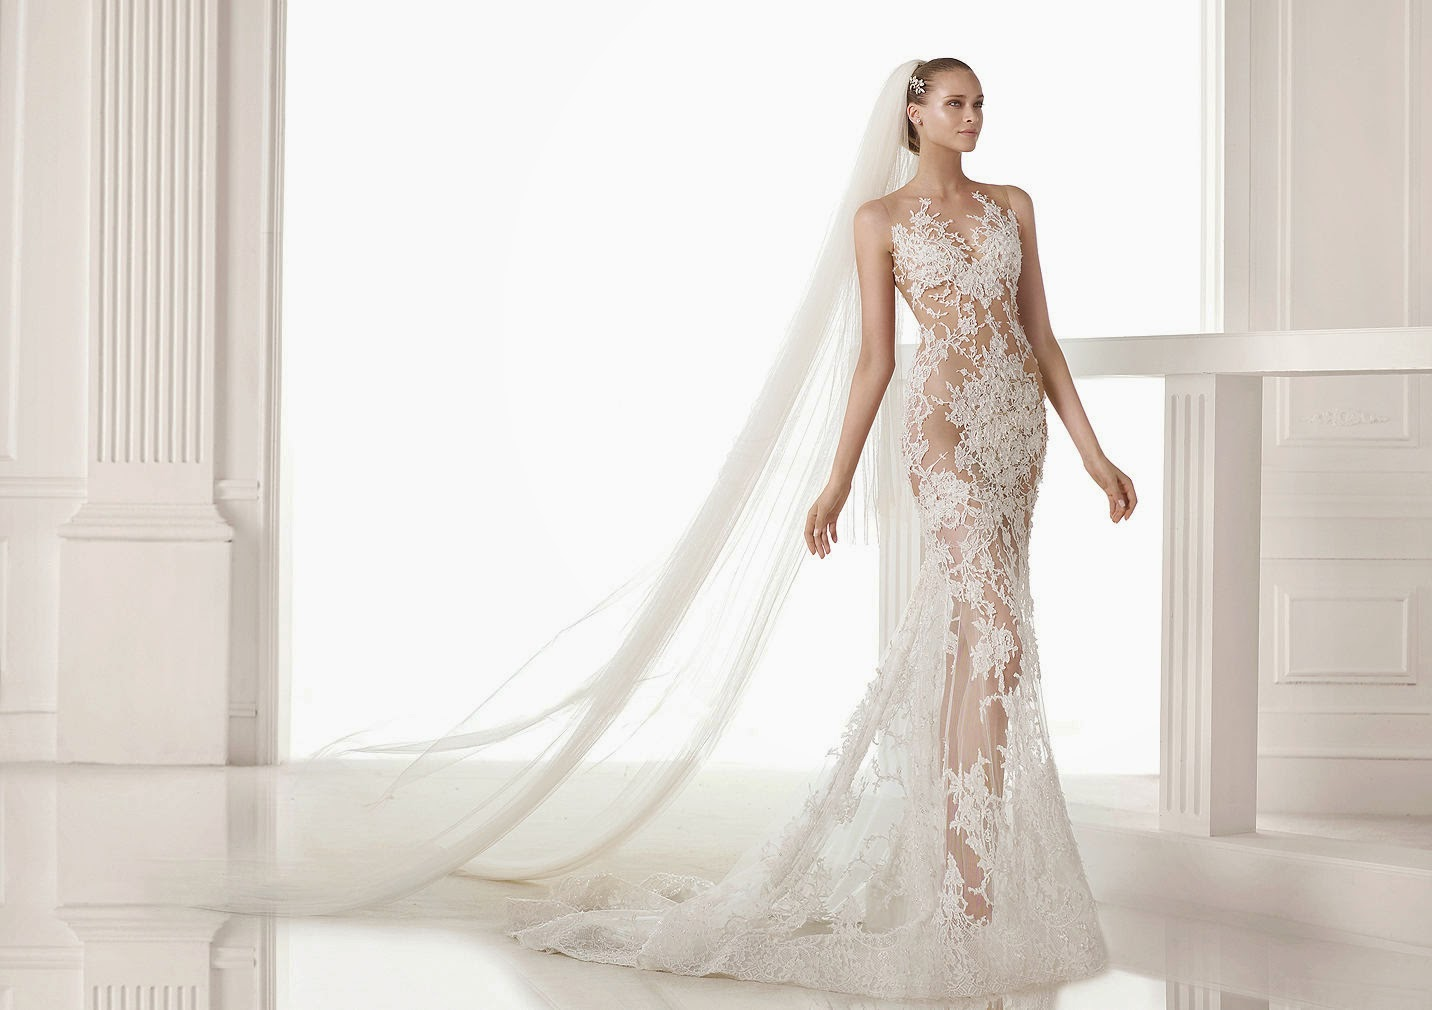 Pronovias 2014 Bridal Campaign Pronovias 2014 Bridal Campaign new picture